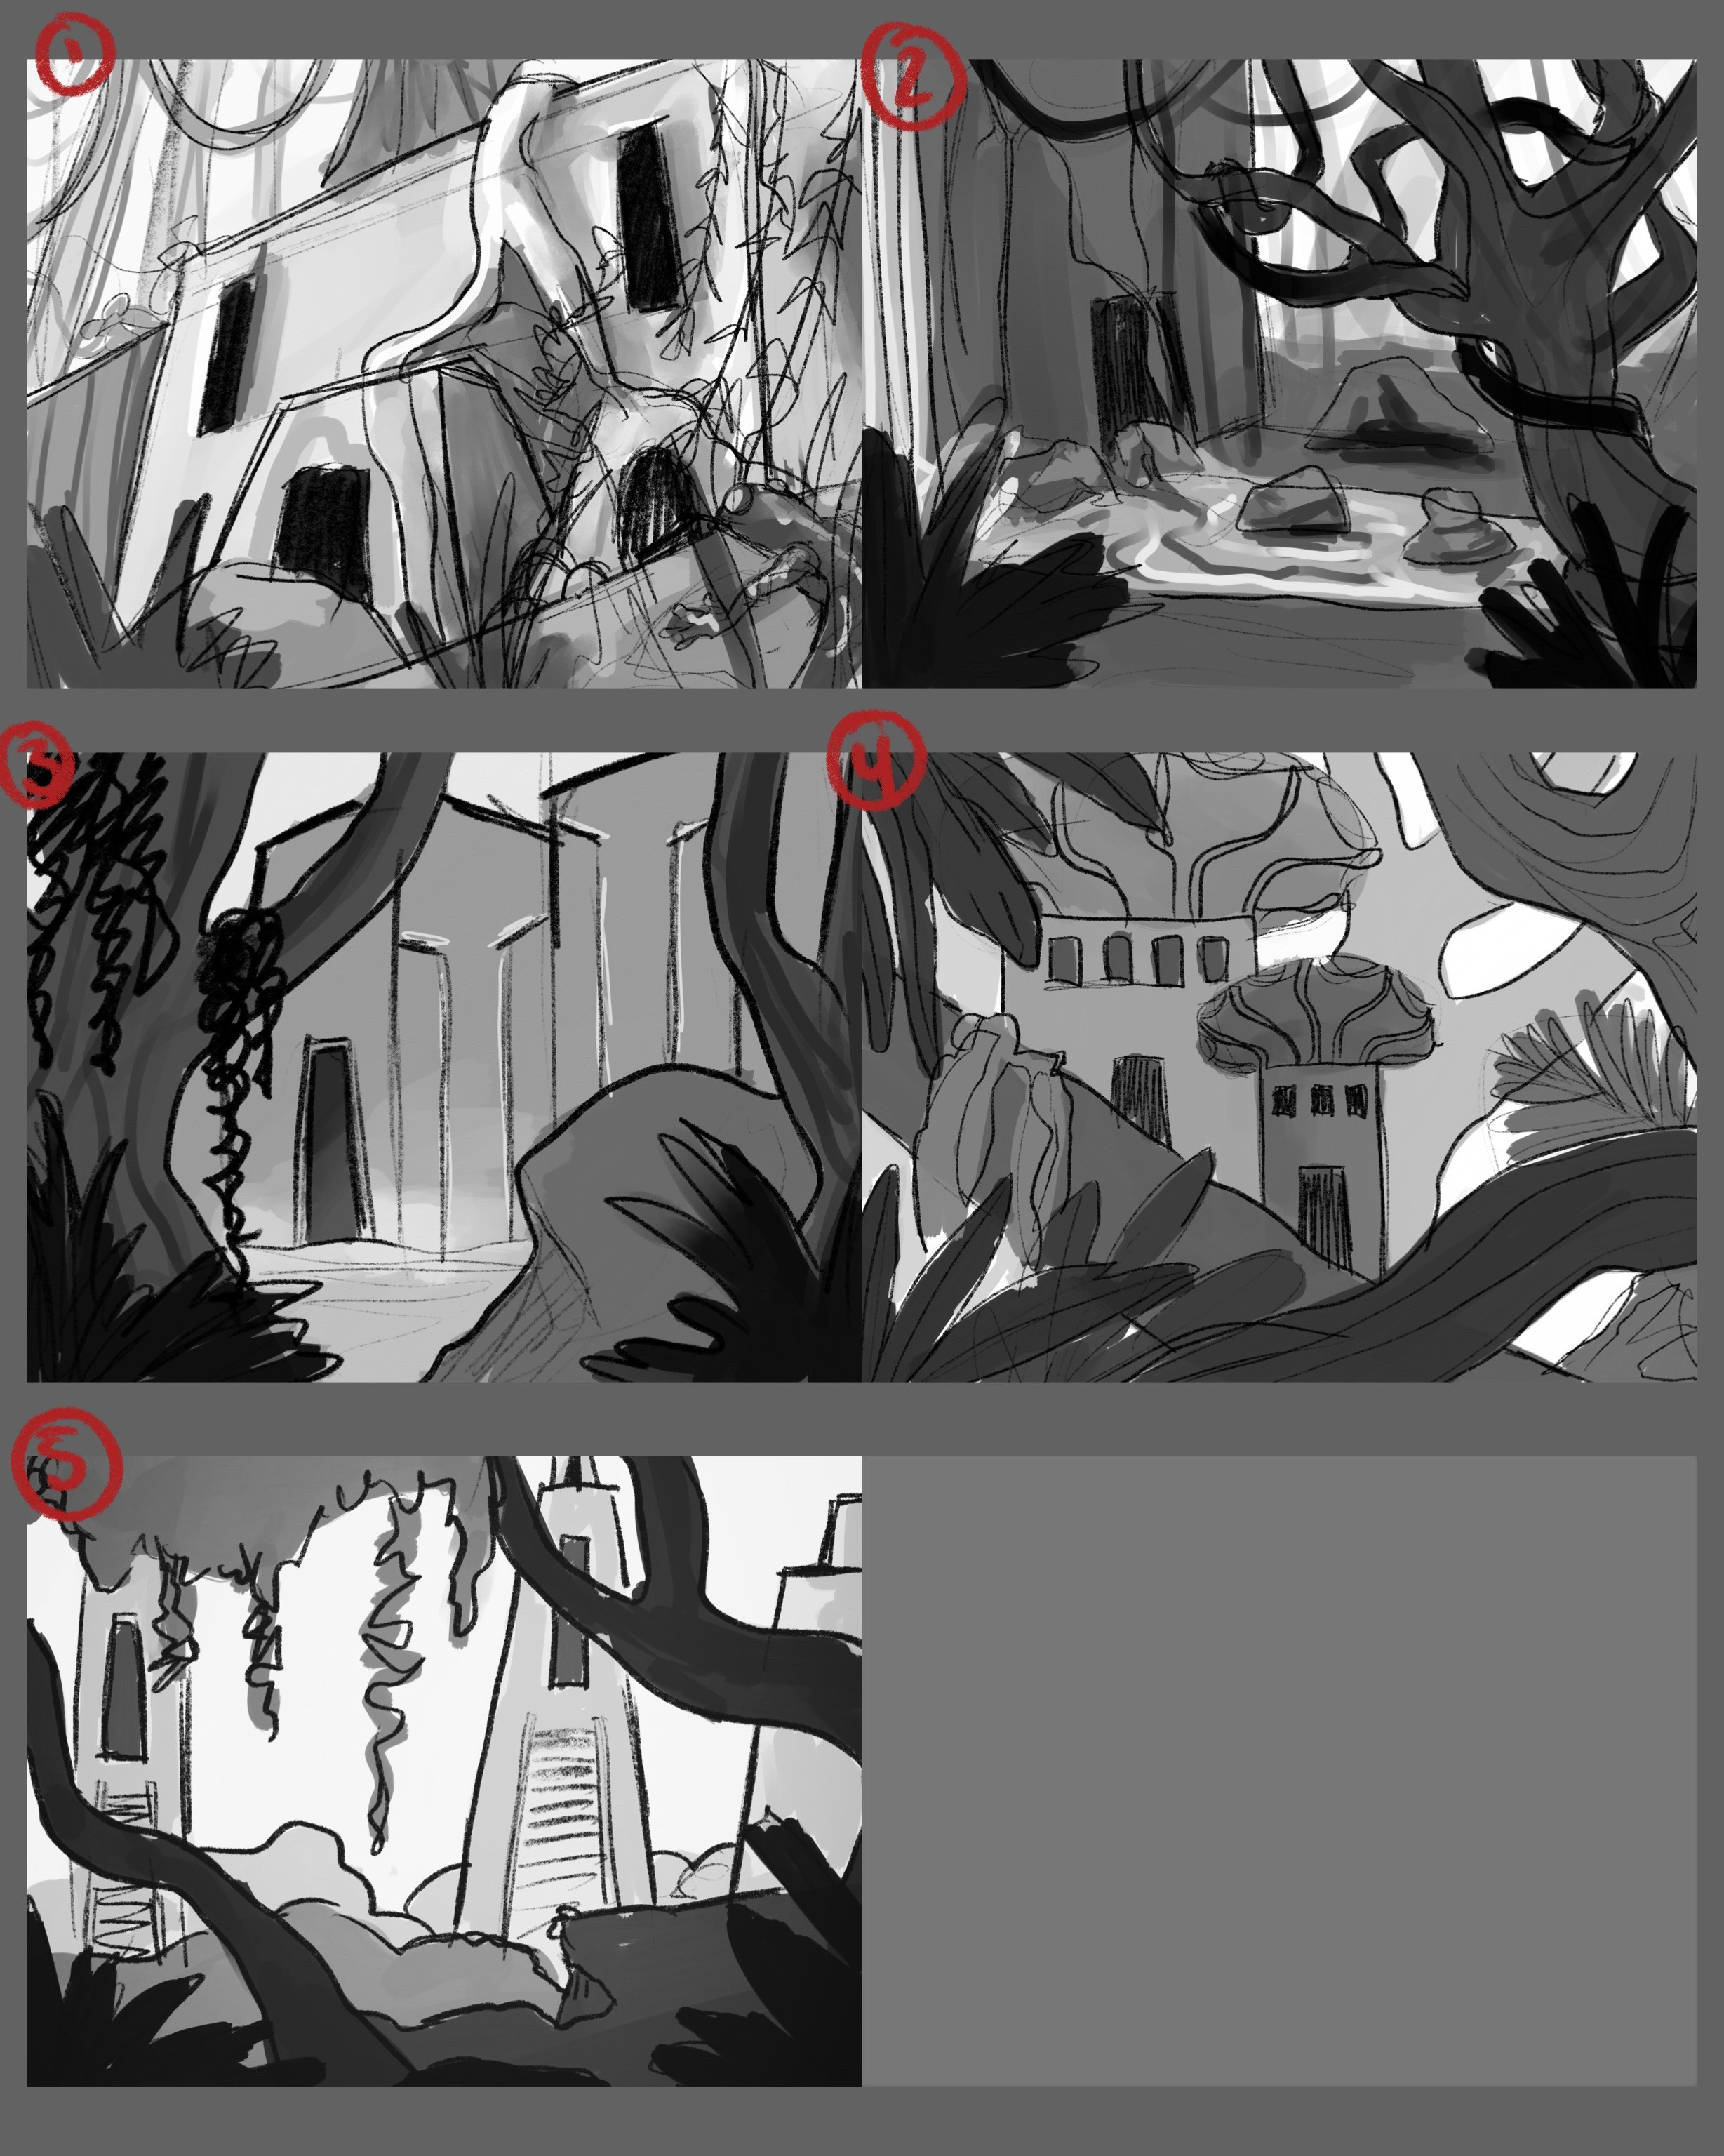 Tight sketches of the top 5 thumbnails